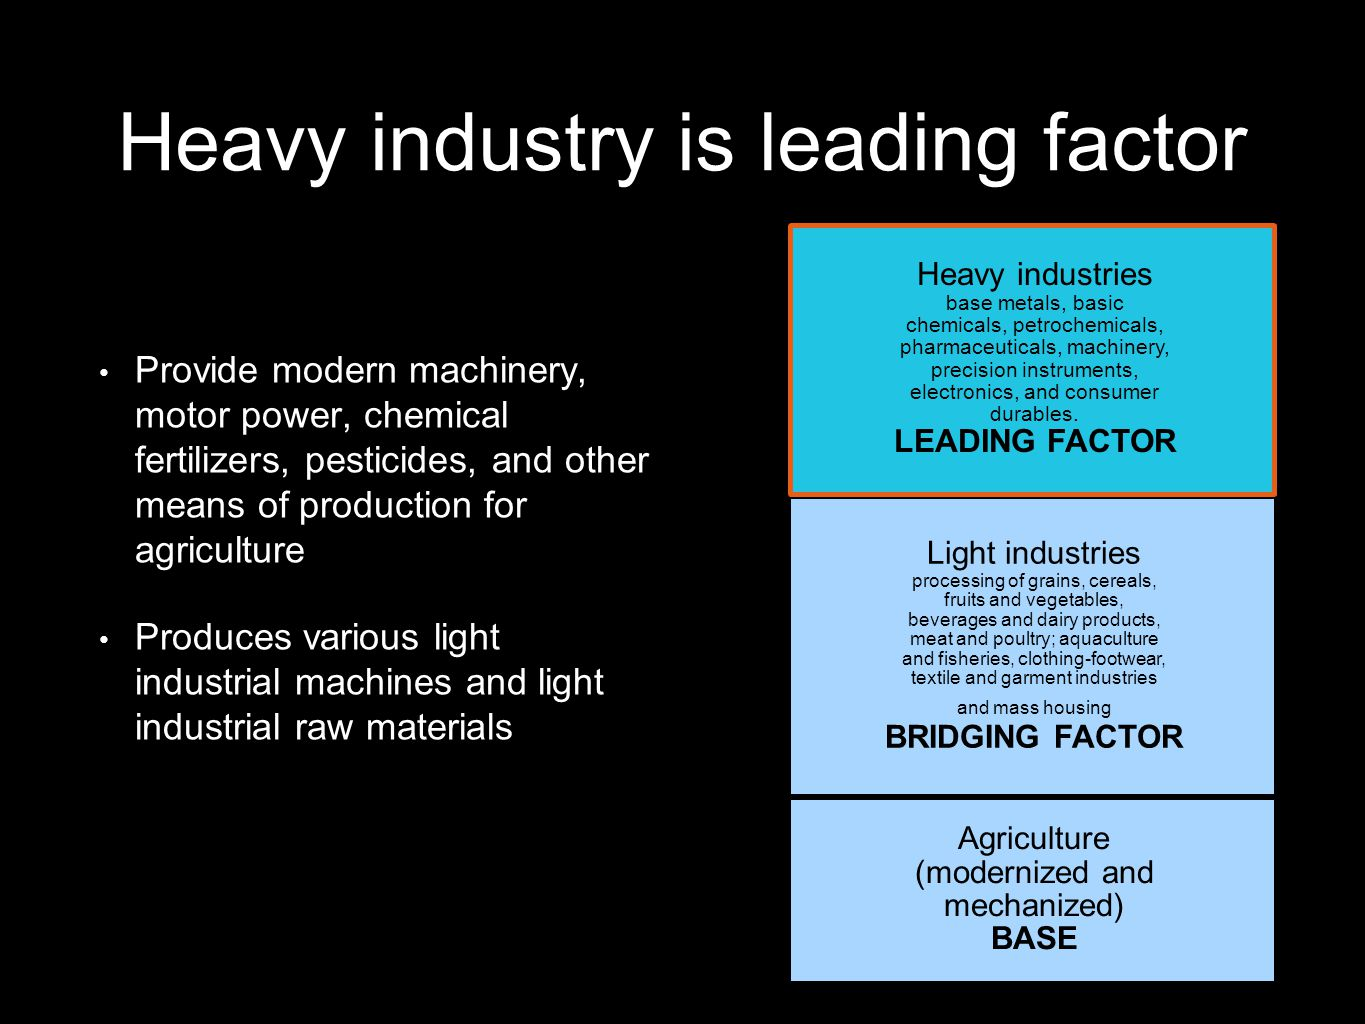 Heavy industry is leading factor Provide modern machinery, motor power, chemical fertilizers, pesticides, and other means of production for agriculture Produces various light industrial machines and light industrial raw materials Heavy industries base metals, basic chemicals, petrochemicals, pharmaceuticals, machinery, precision instruments, electronics, and consumer durables.